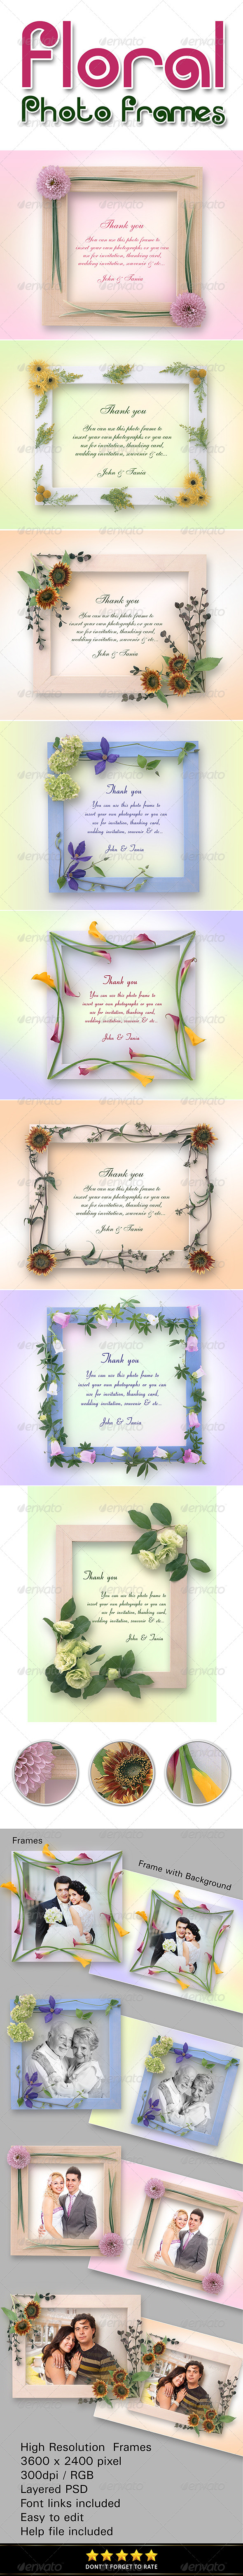 GraphicRiver Floral Photo Frames 8257283